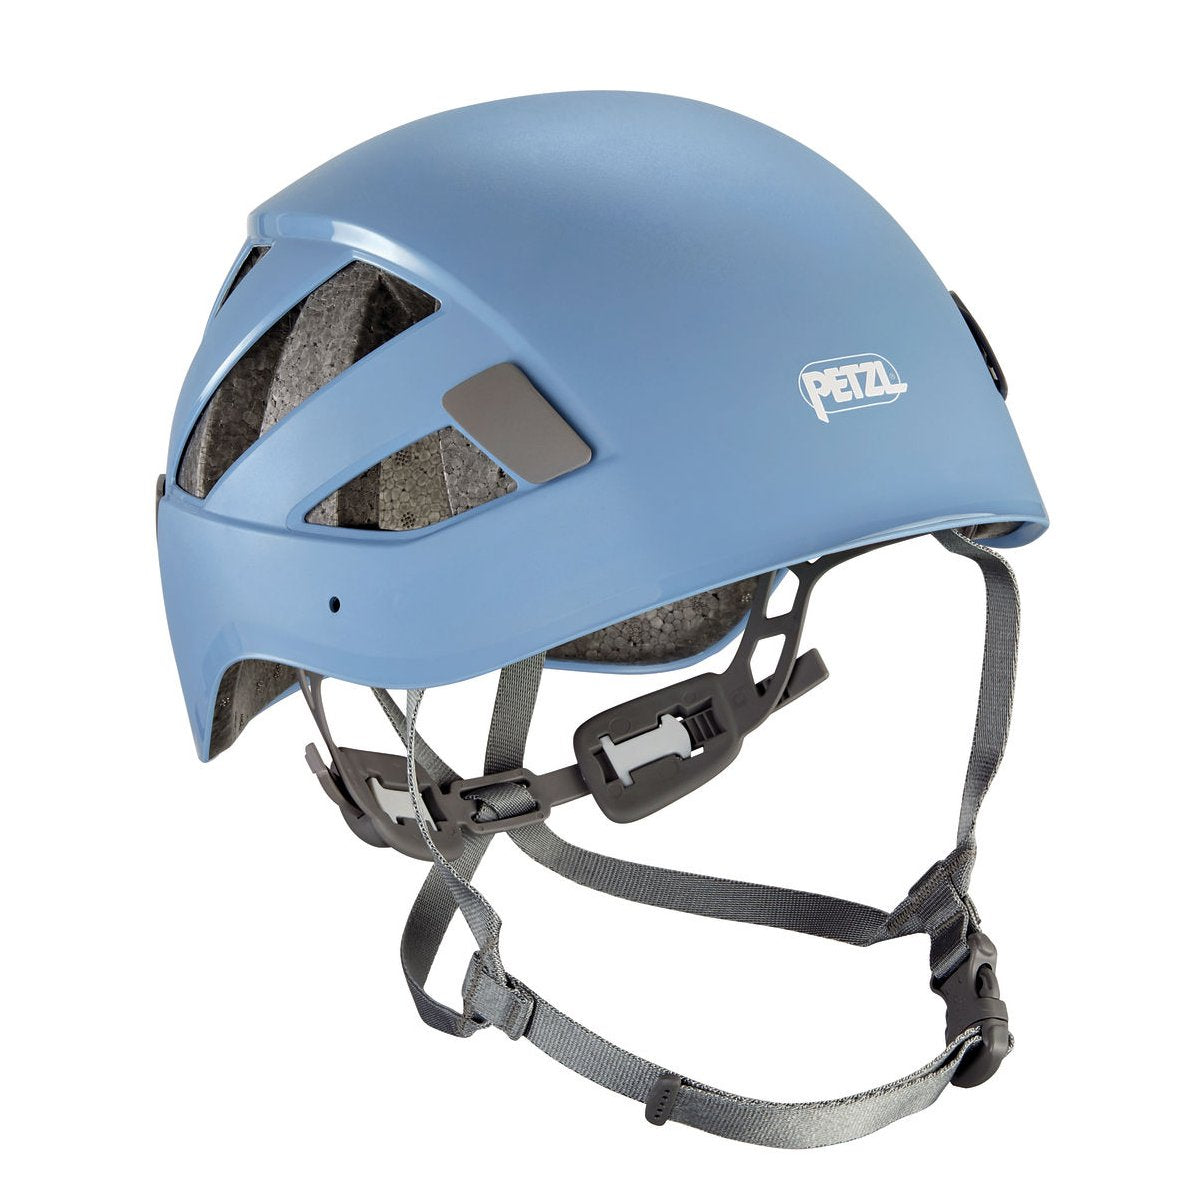 Petzl Boreo climbing helmet, front/side view in blue colour with grey chin straps